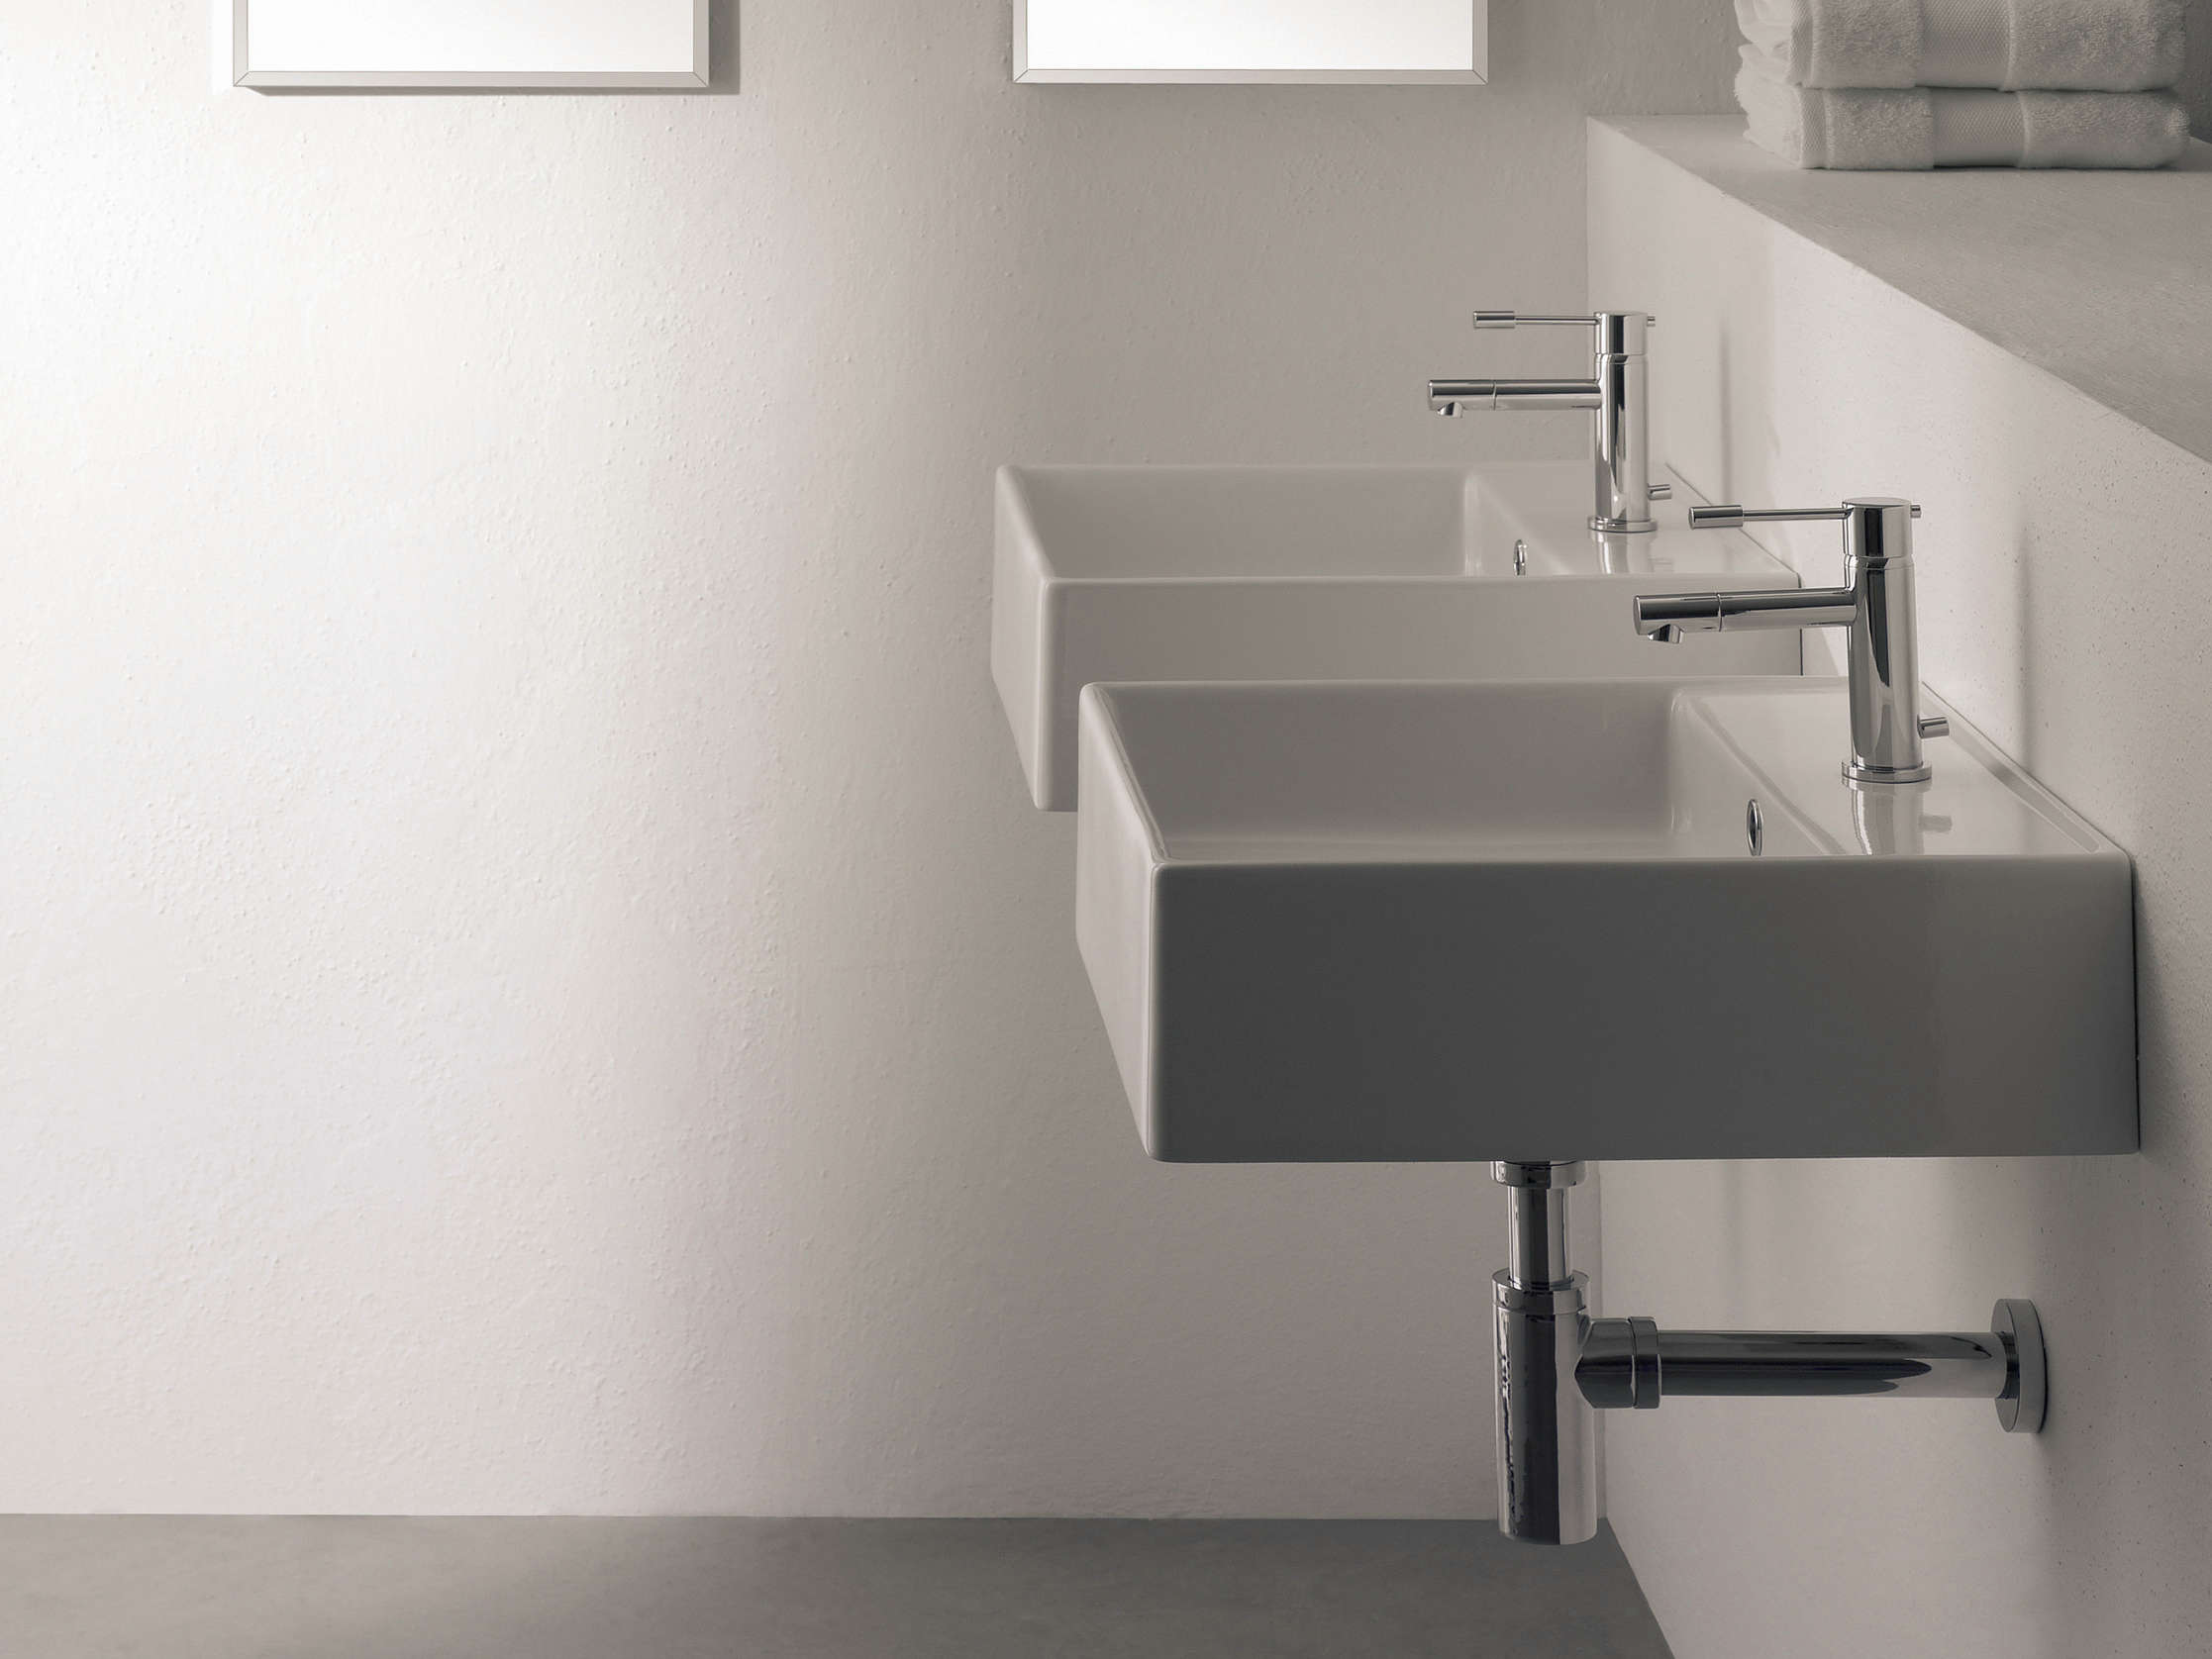 scarabeo thin line wallmounted ceramic washbasin